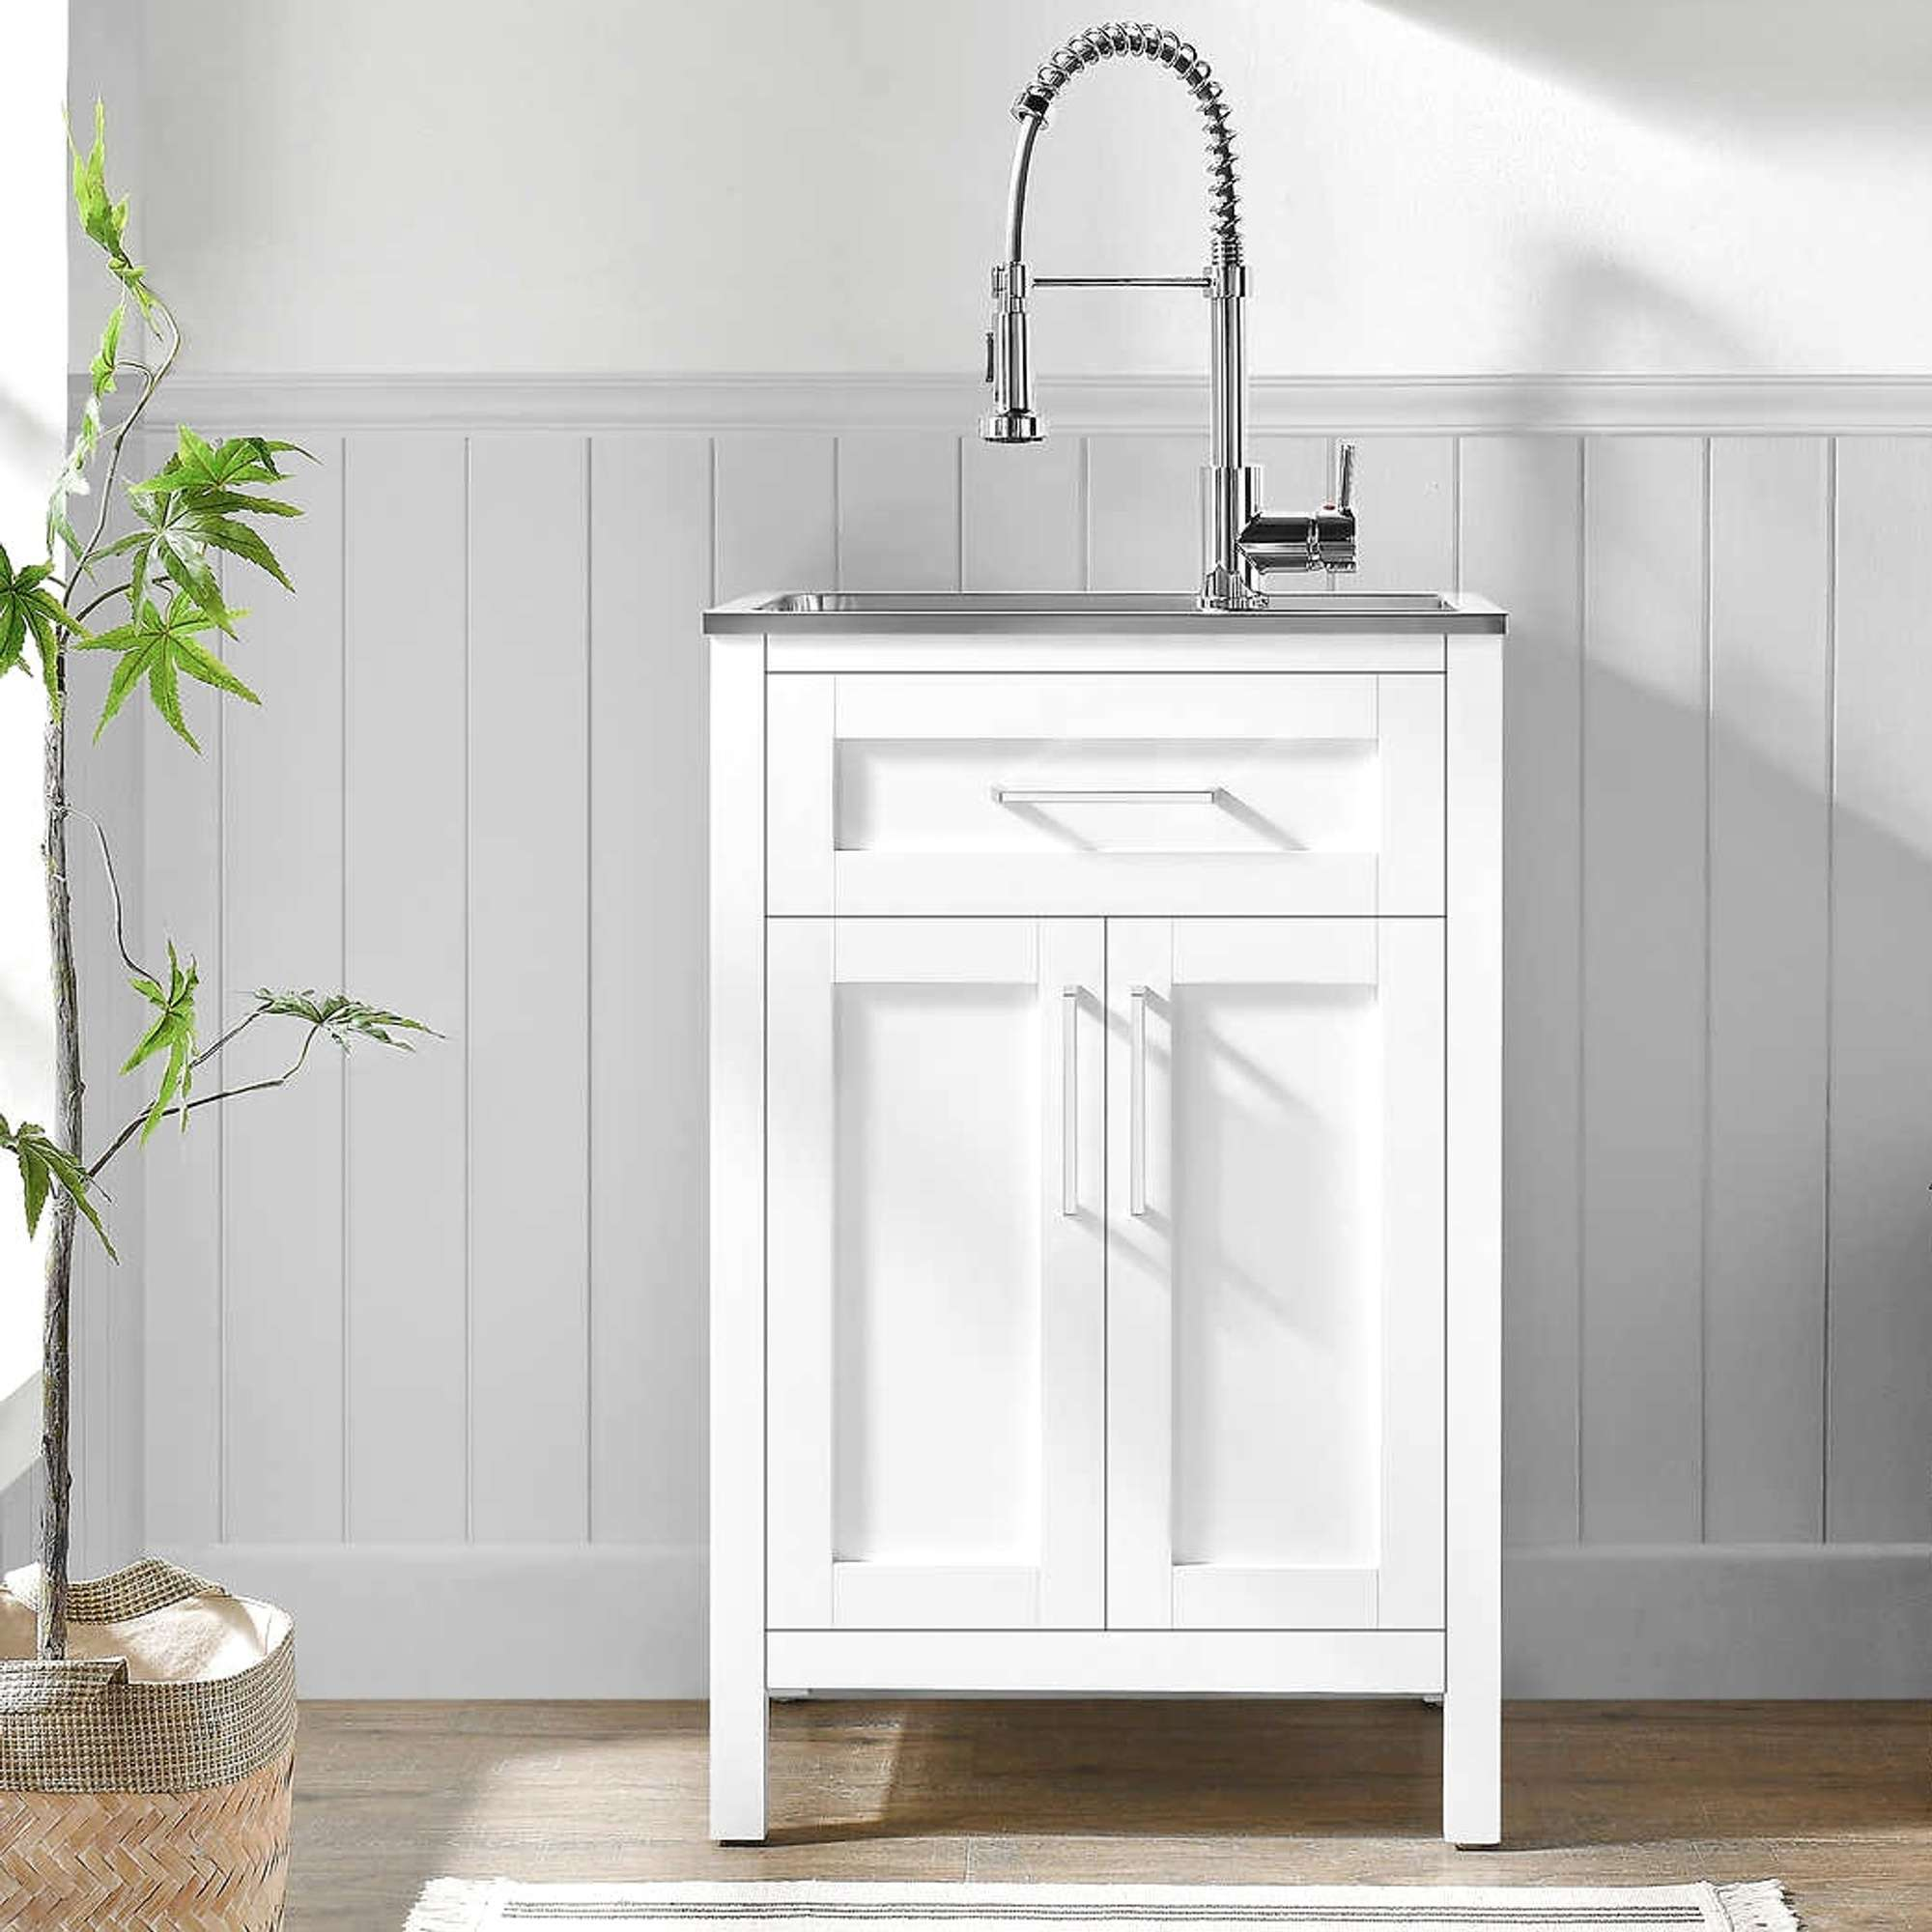 New Ove Paloma 22 Utility Sink With Faucet Cabinet 2 Loveseat Online Auctions San Diego